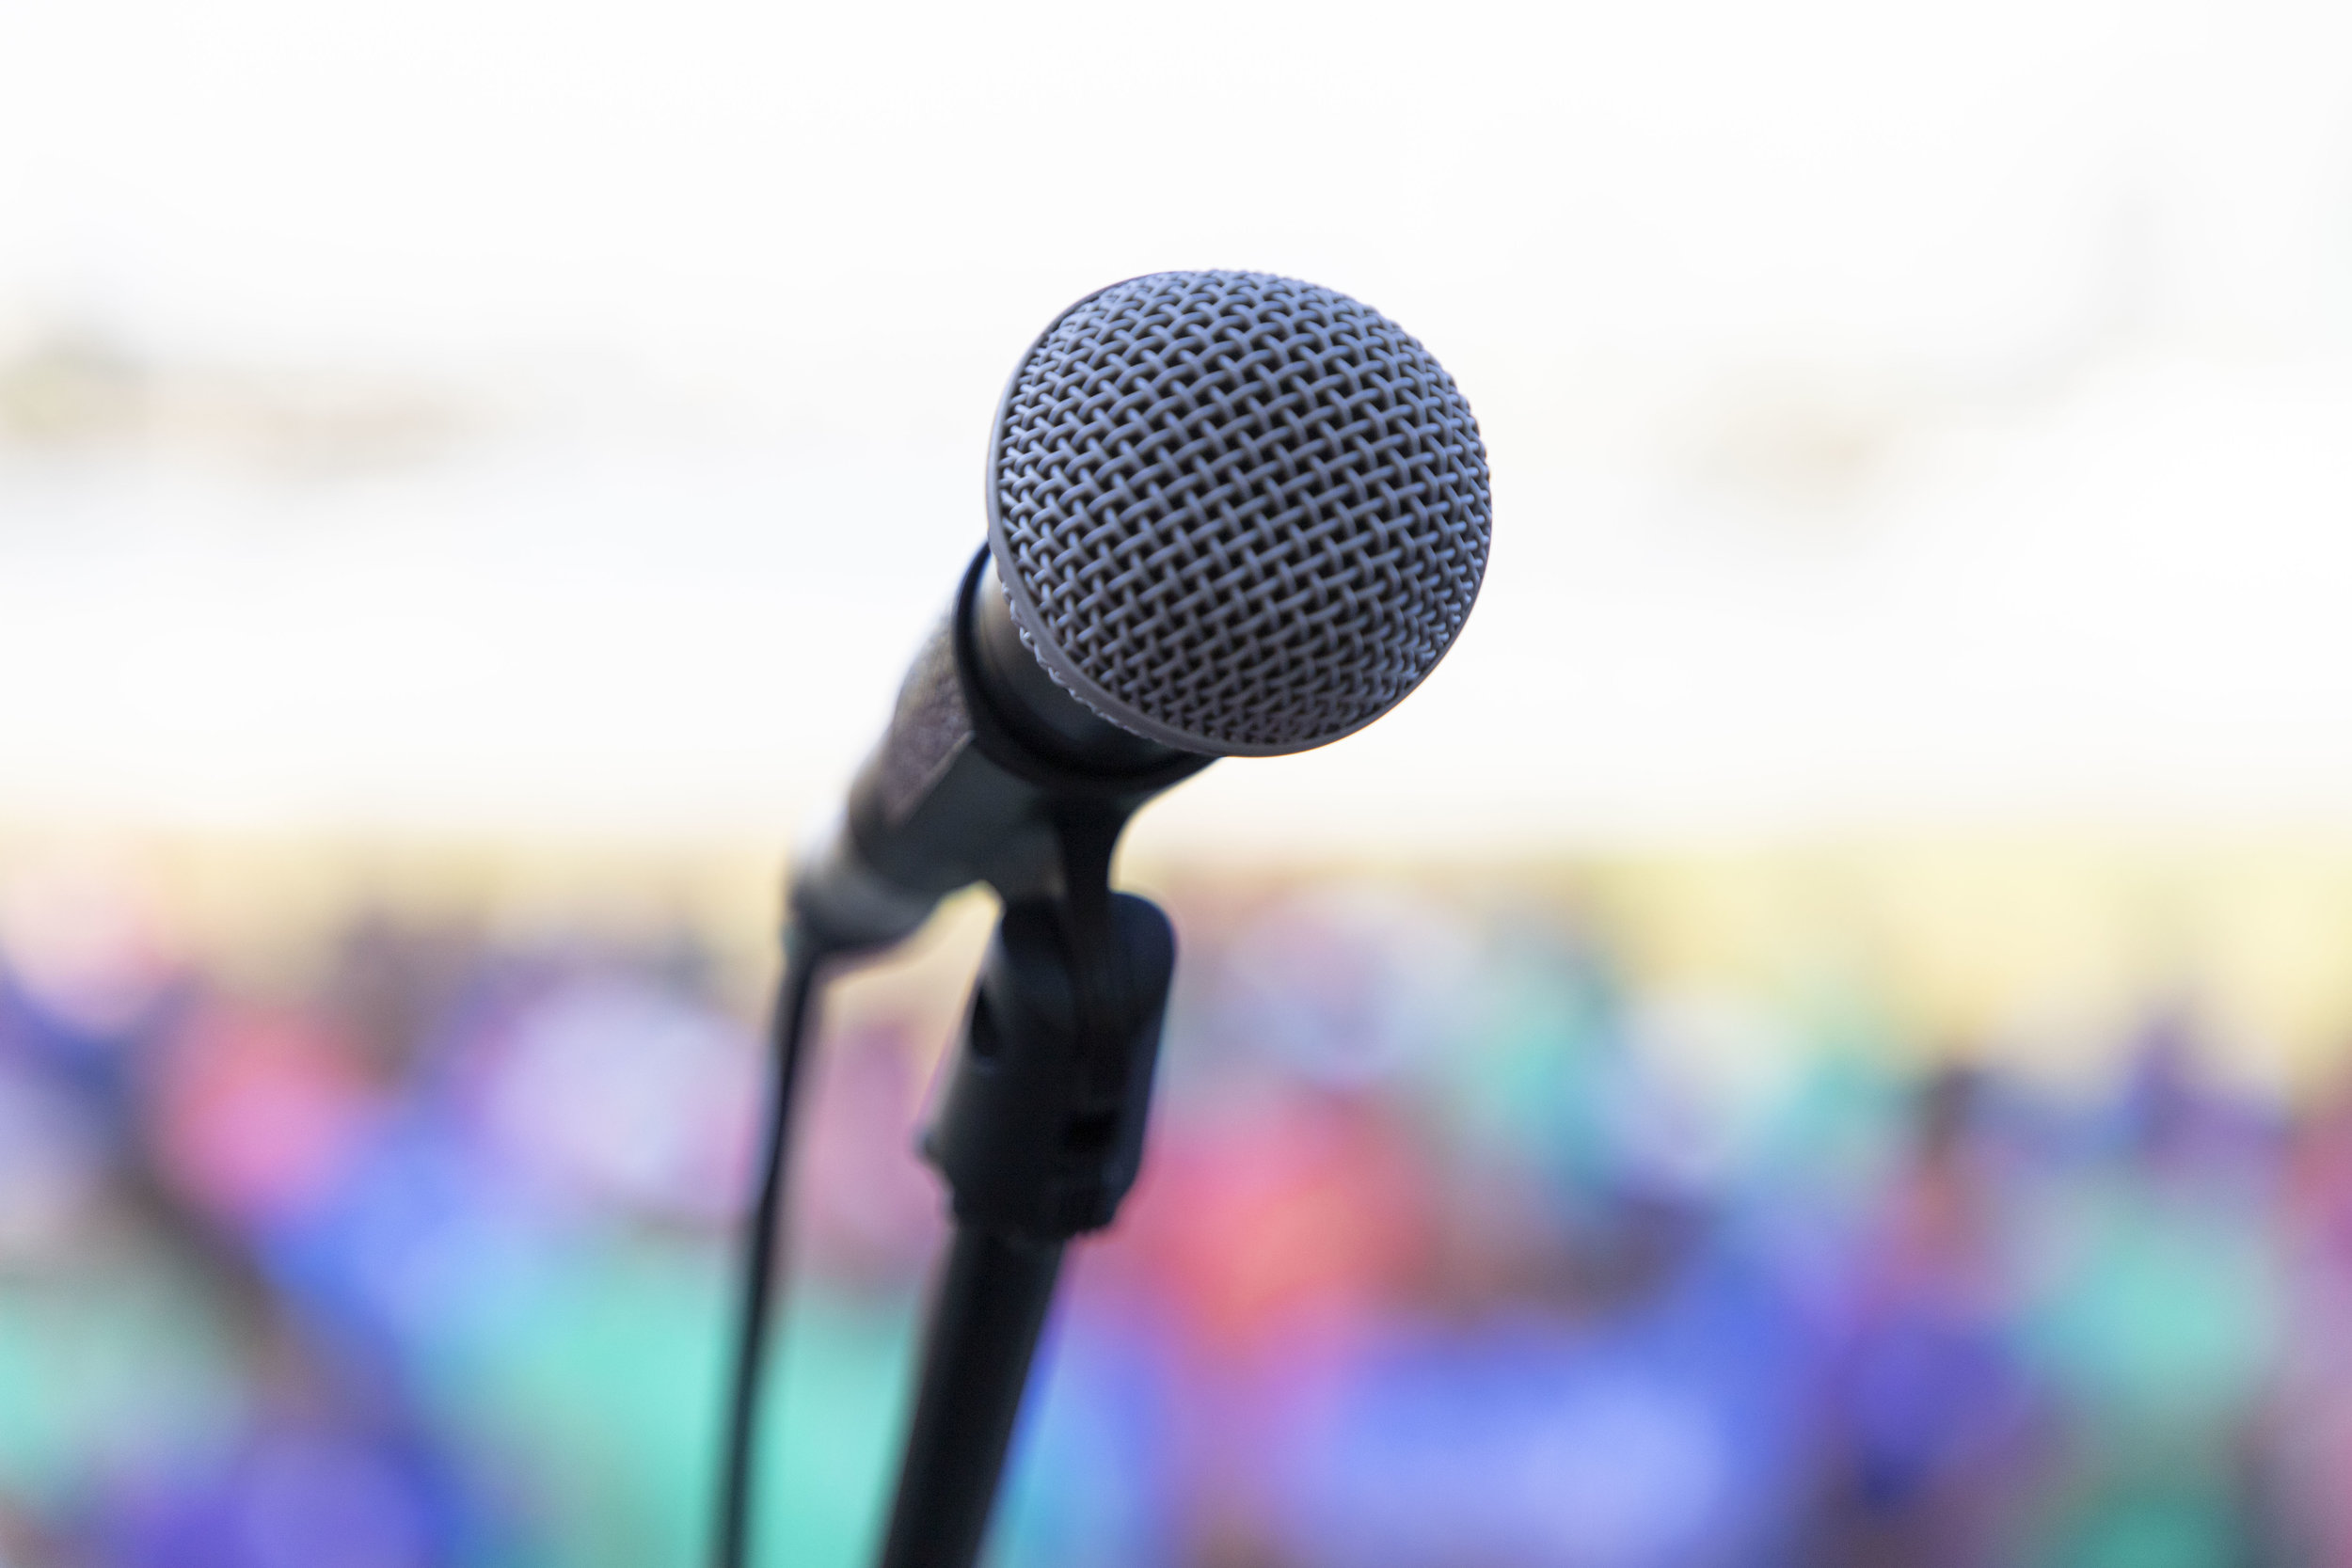 A microphone in front of the assembled crowd.